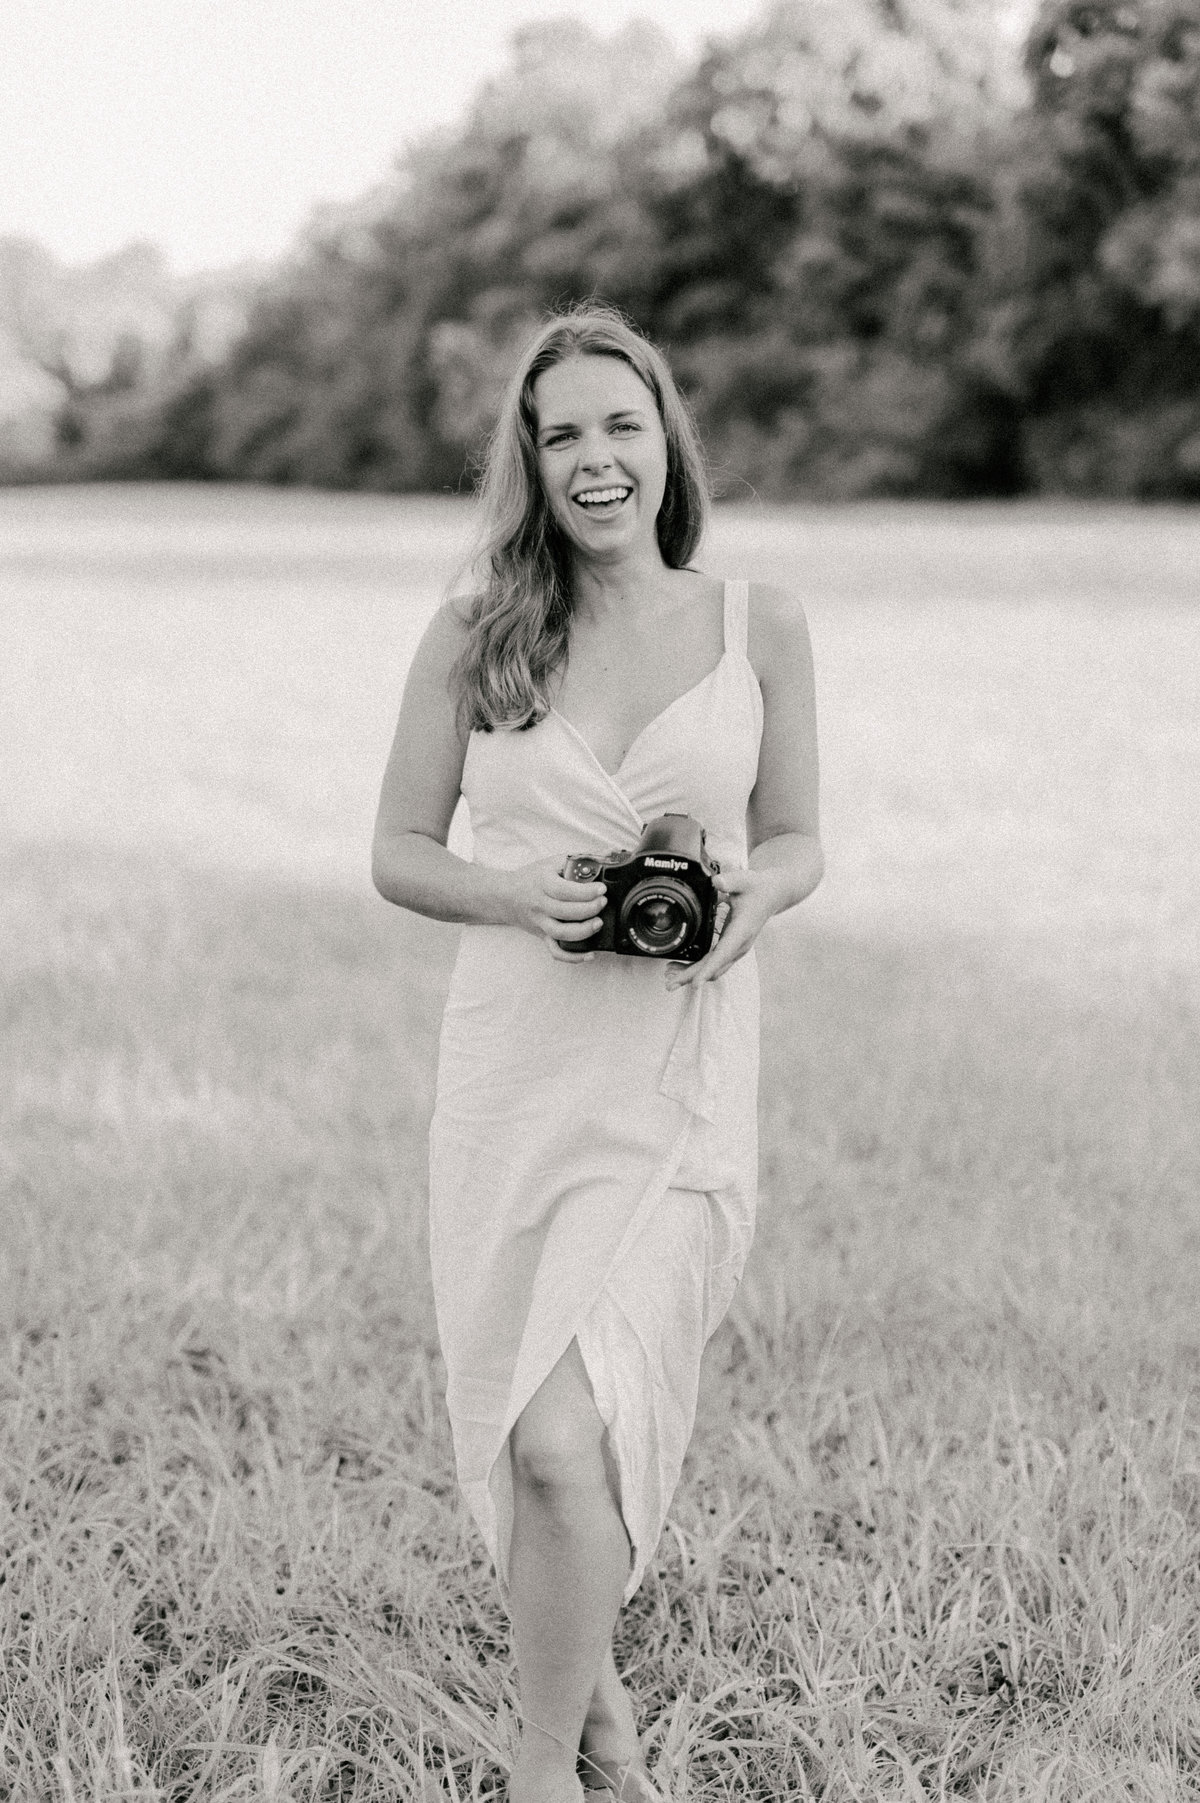 Megan Harris, Owner of Megan Harris Photography